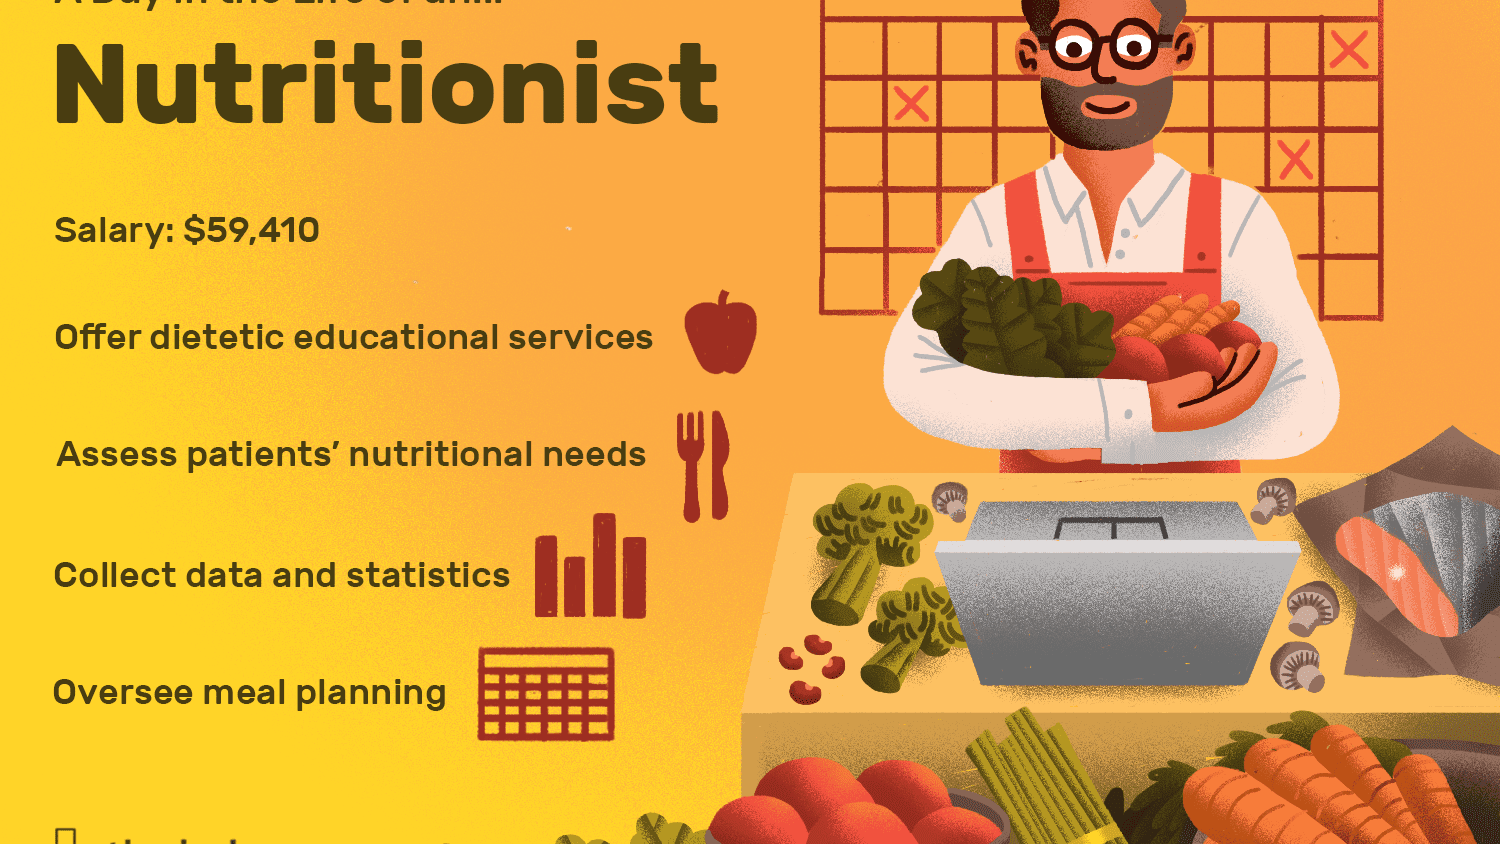 Nutritionist and Dietitian Job Description: Salary, Skills